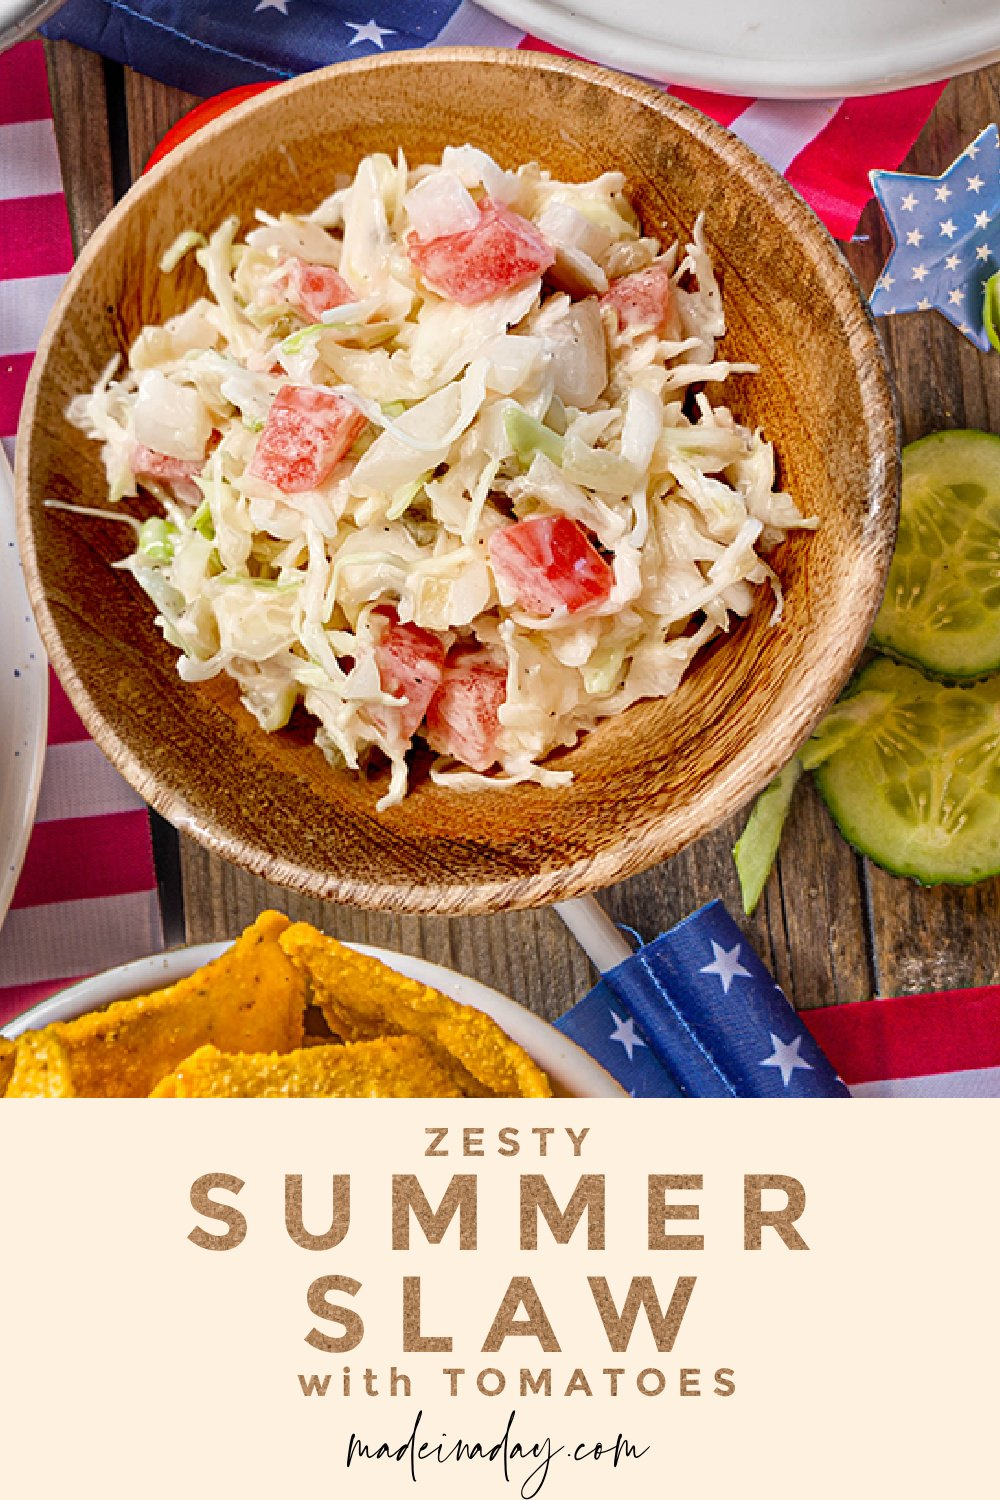 Summer Slaw with Tomatoes   The Perfect Zesty Side Dish